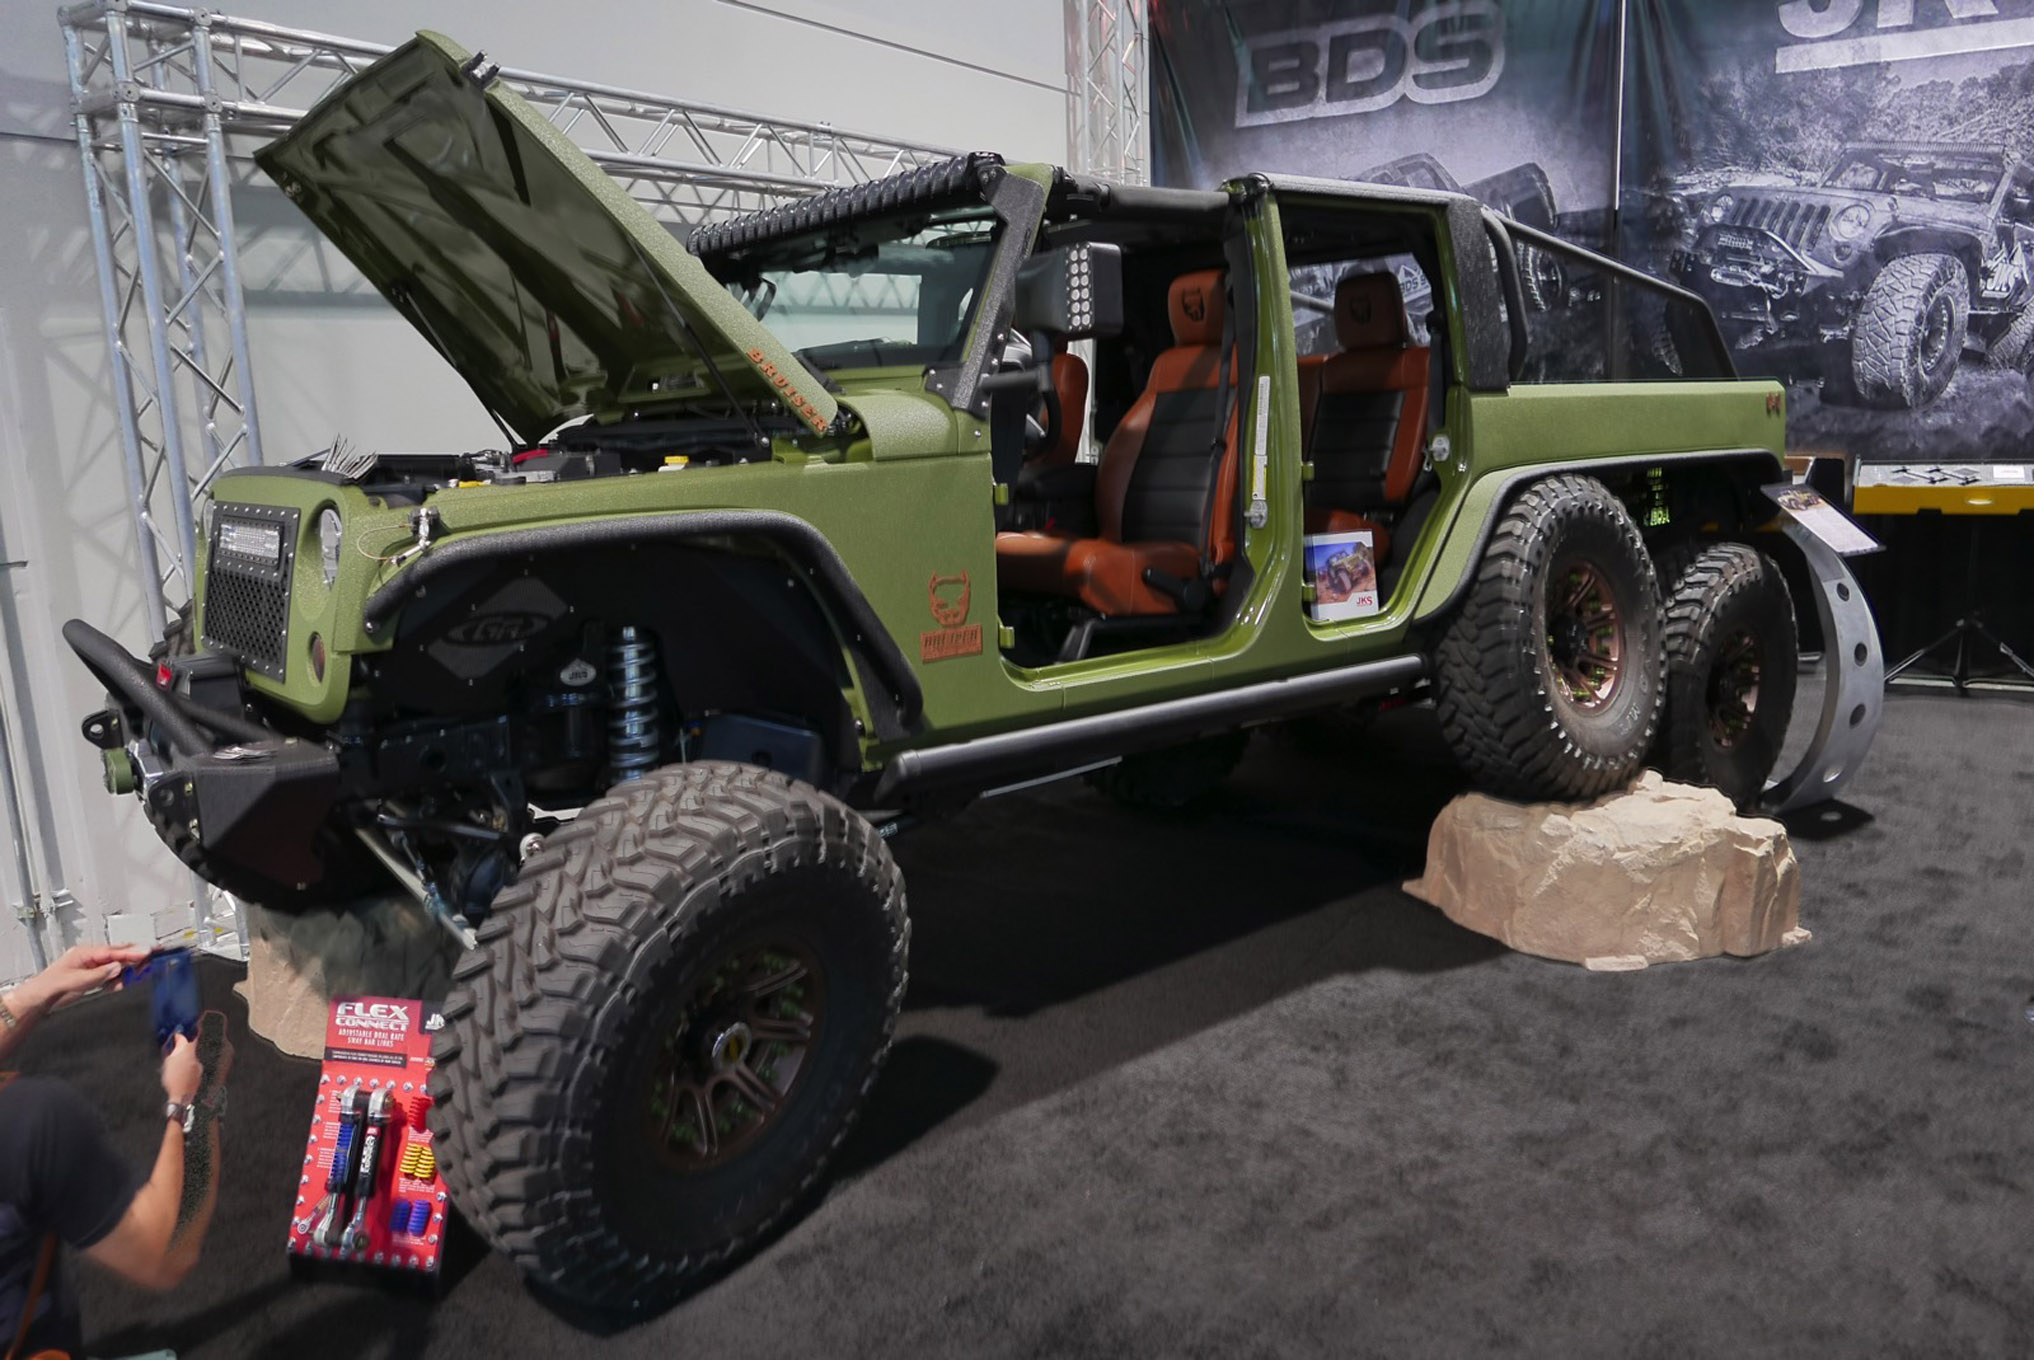 123 sema 2017 day 1 south upper hall gallery photos